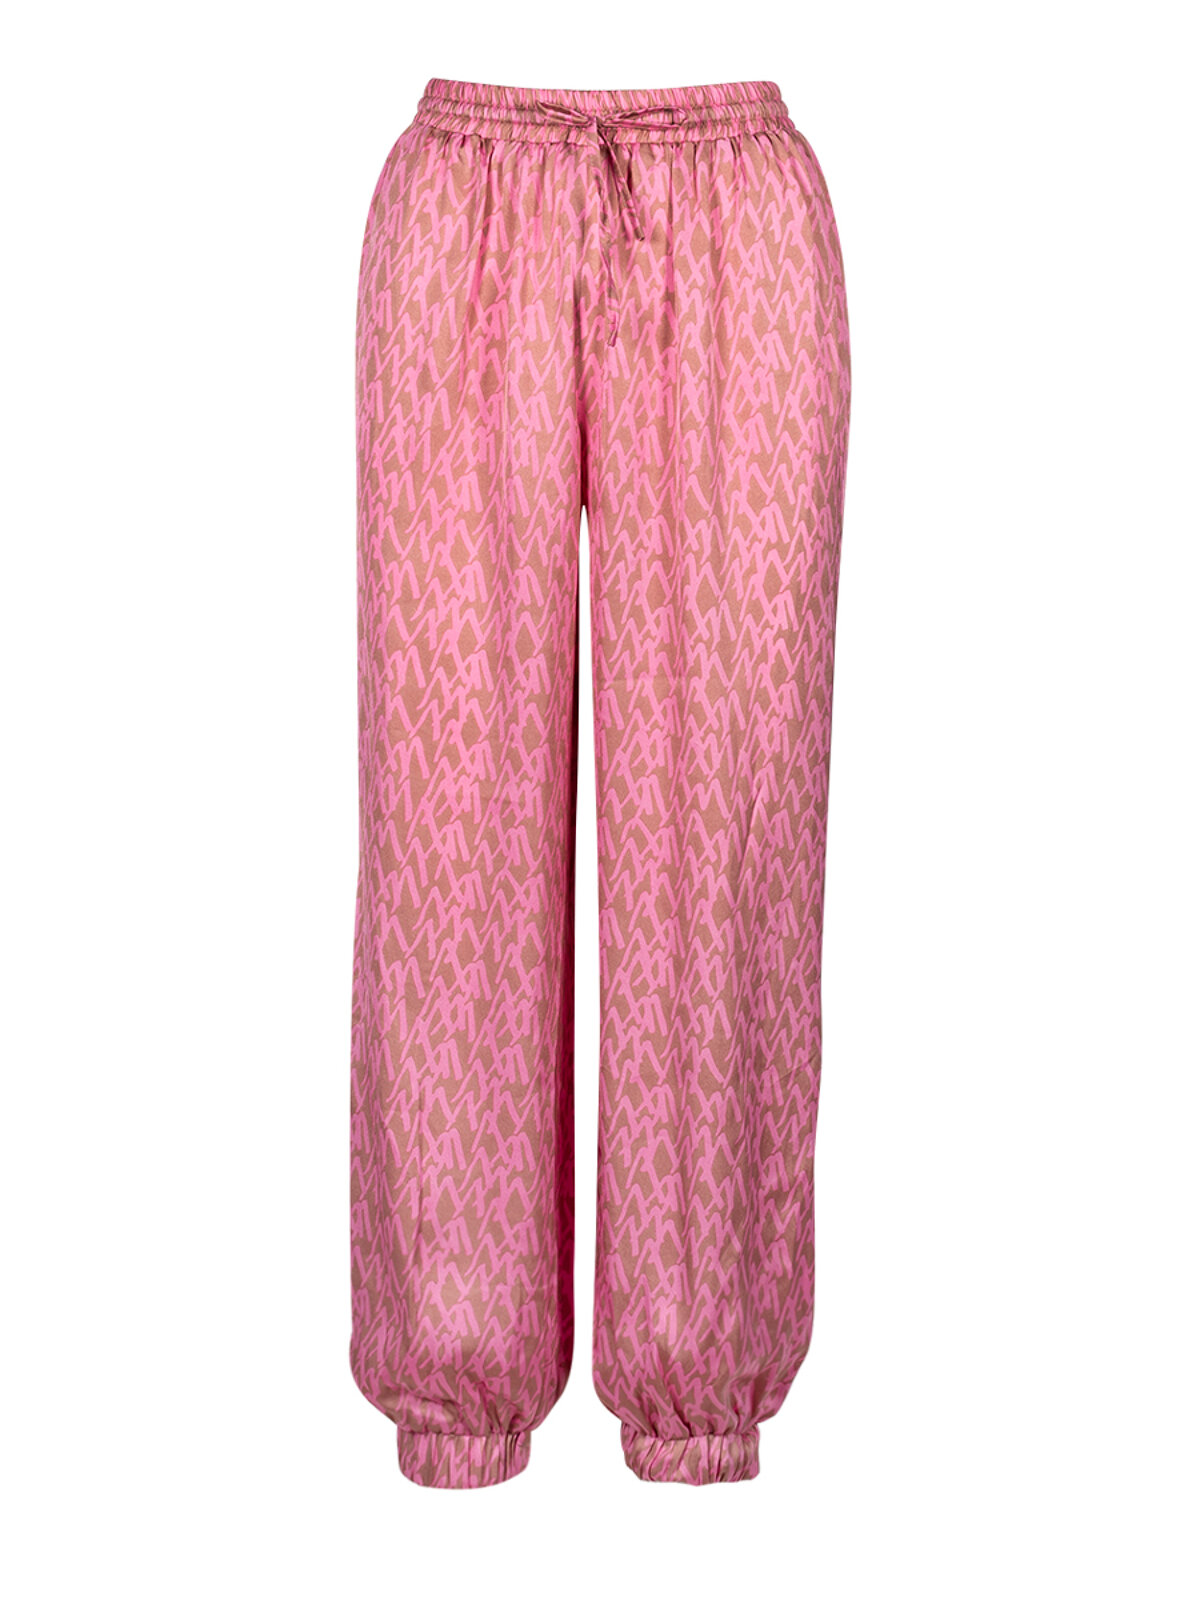 Prudence Swift Trouser - Anonyme Designers